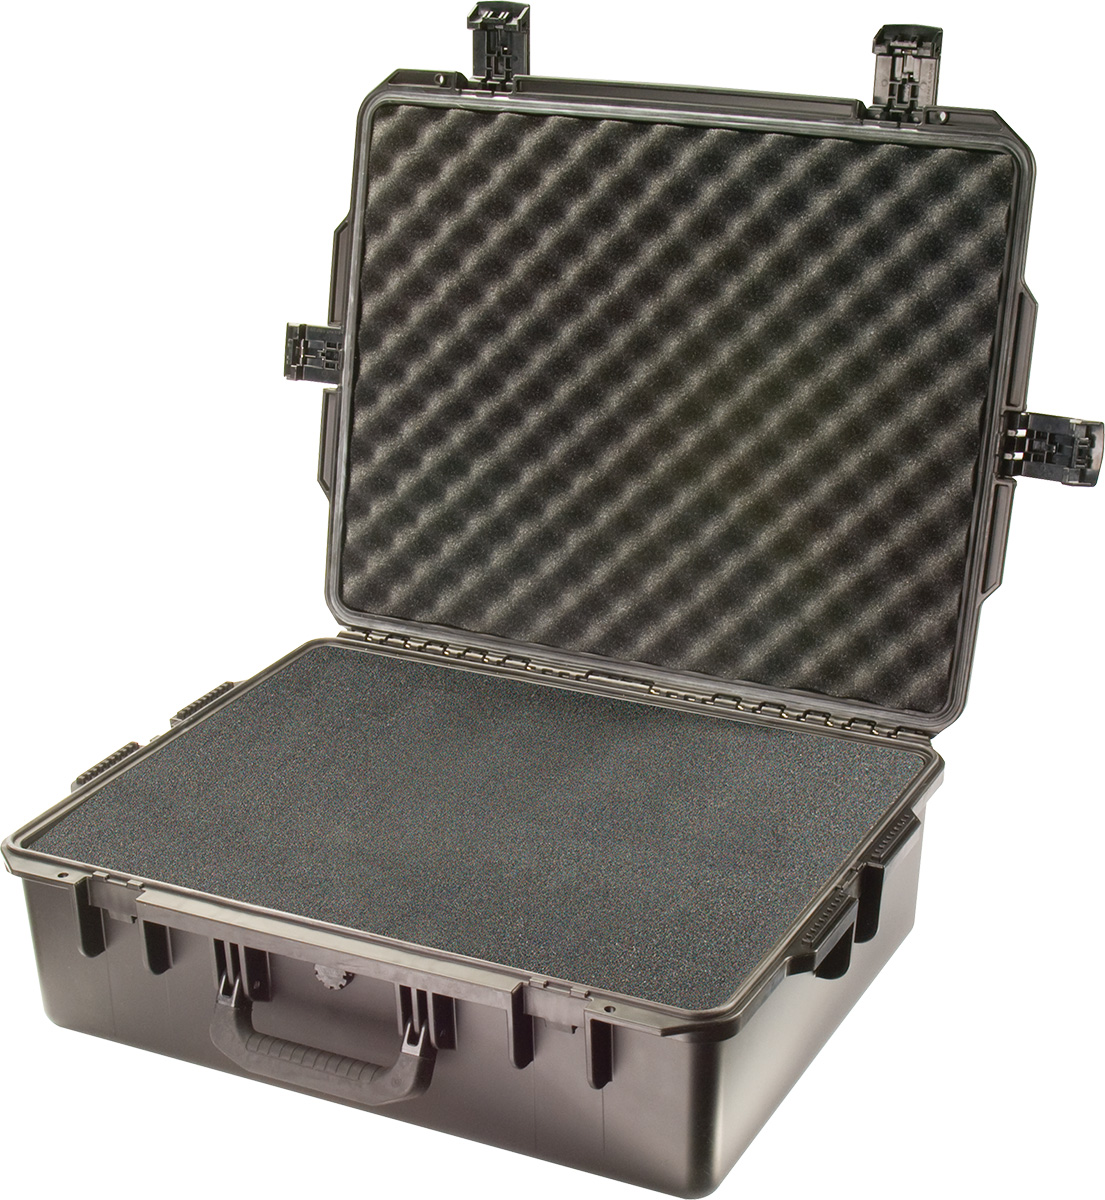 pelican im2700 pelican im2700 strom case watertight